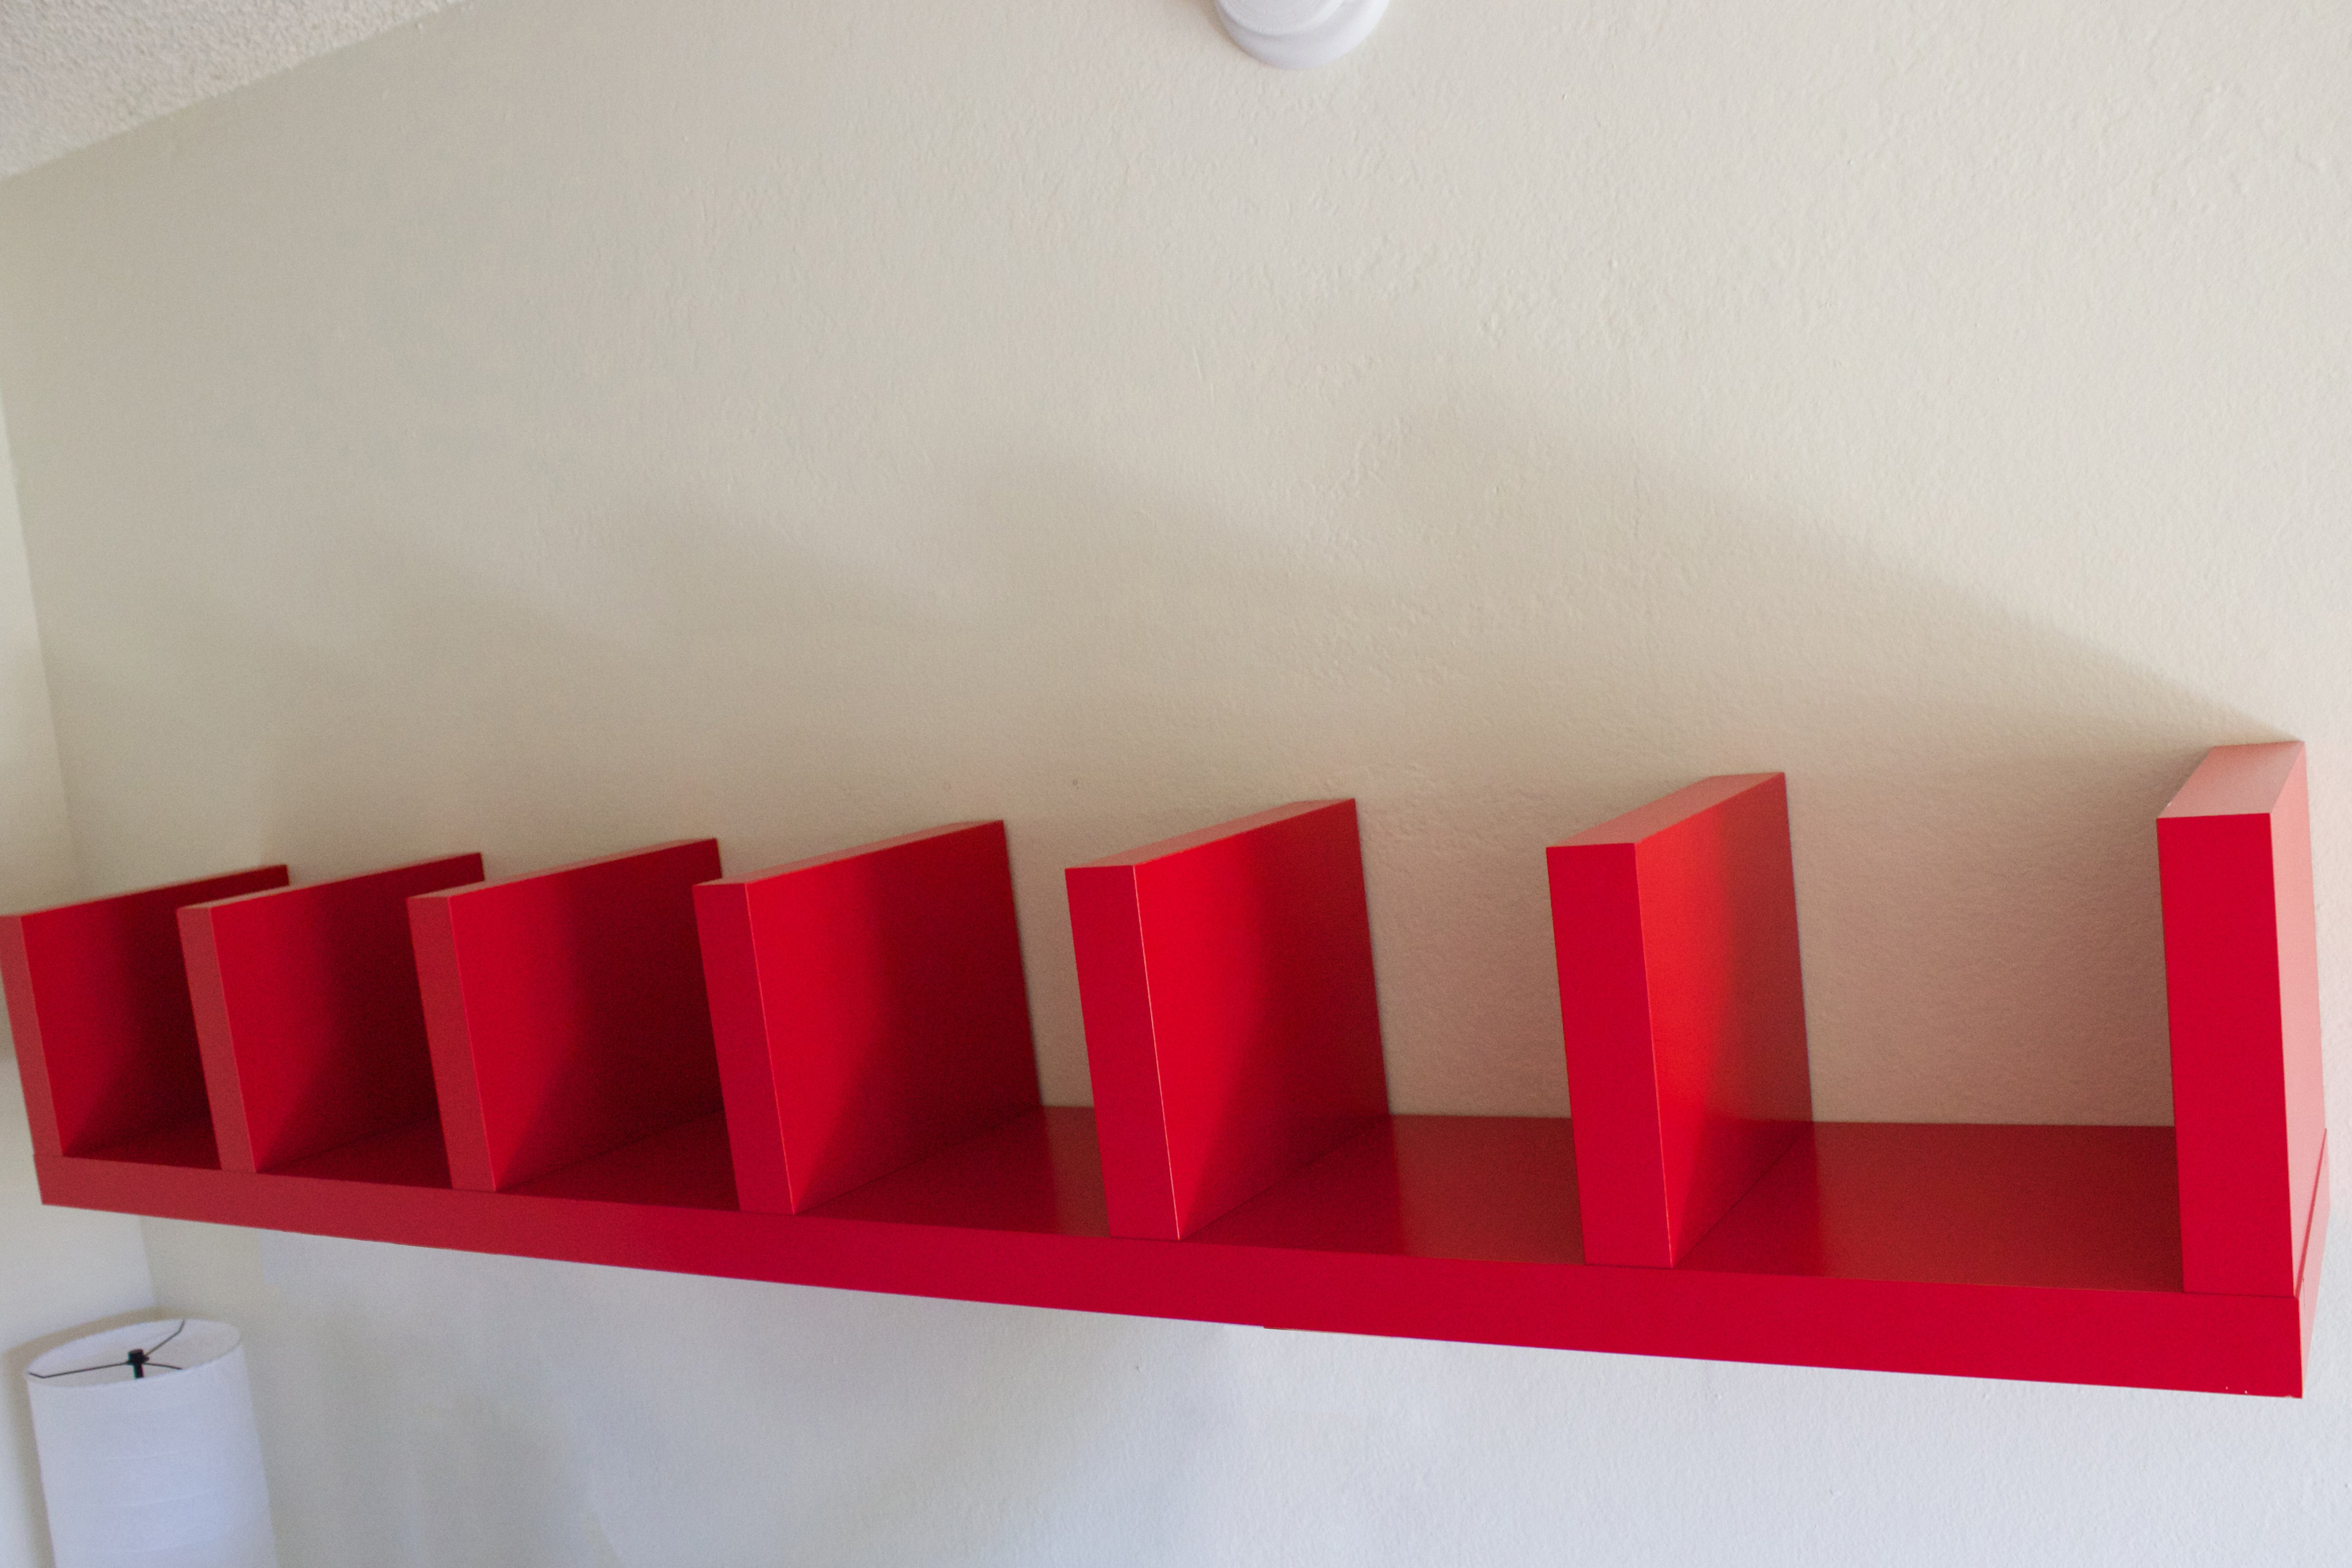 How To Install A Lack Wall Shelf With Pictures Ehow